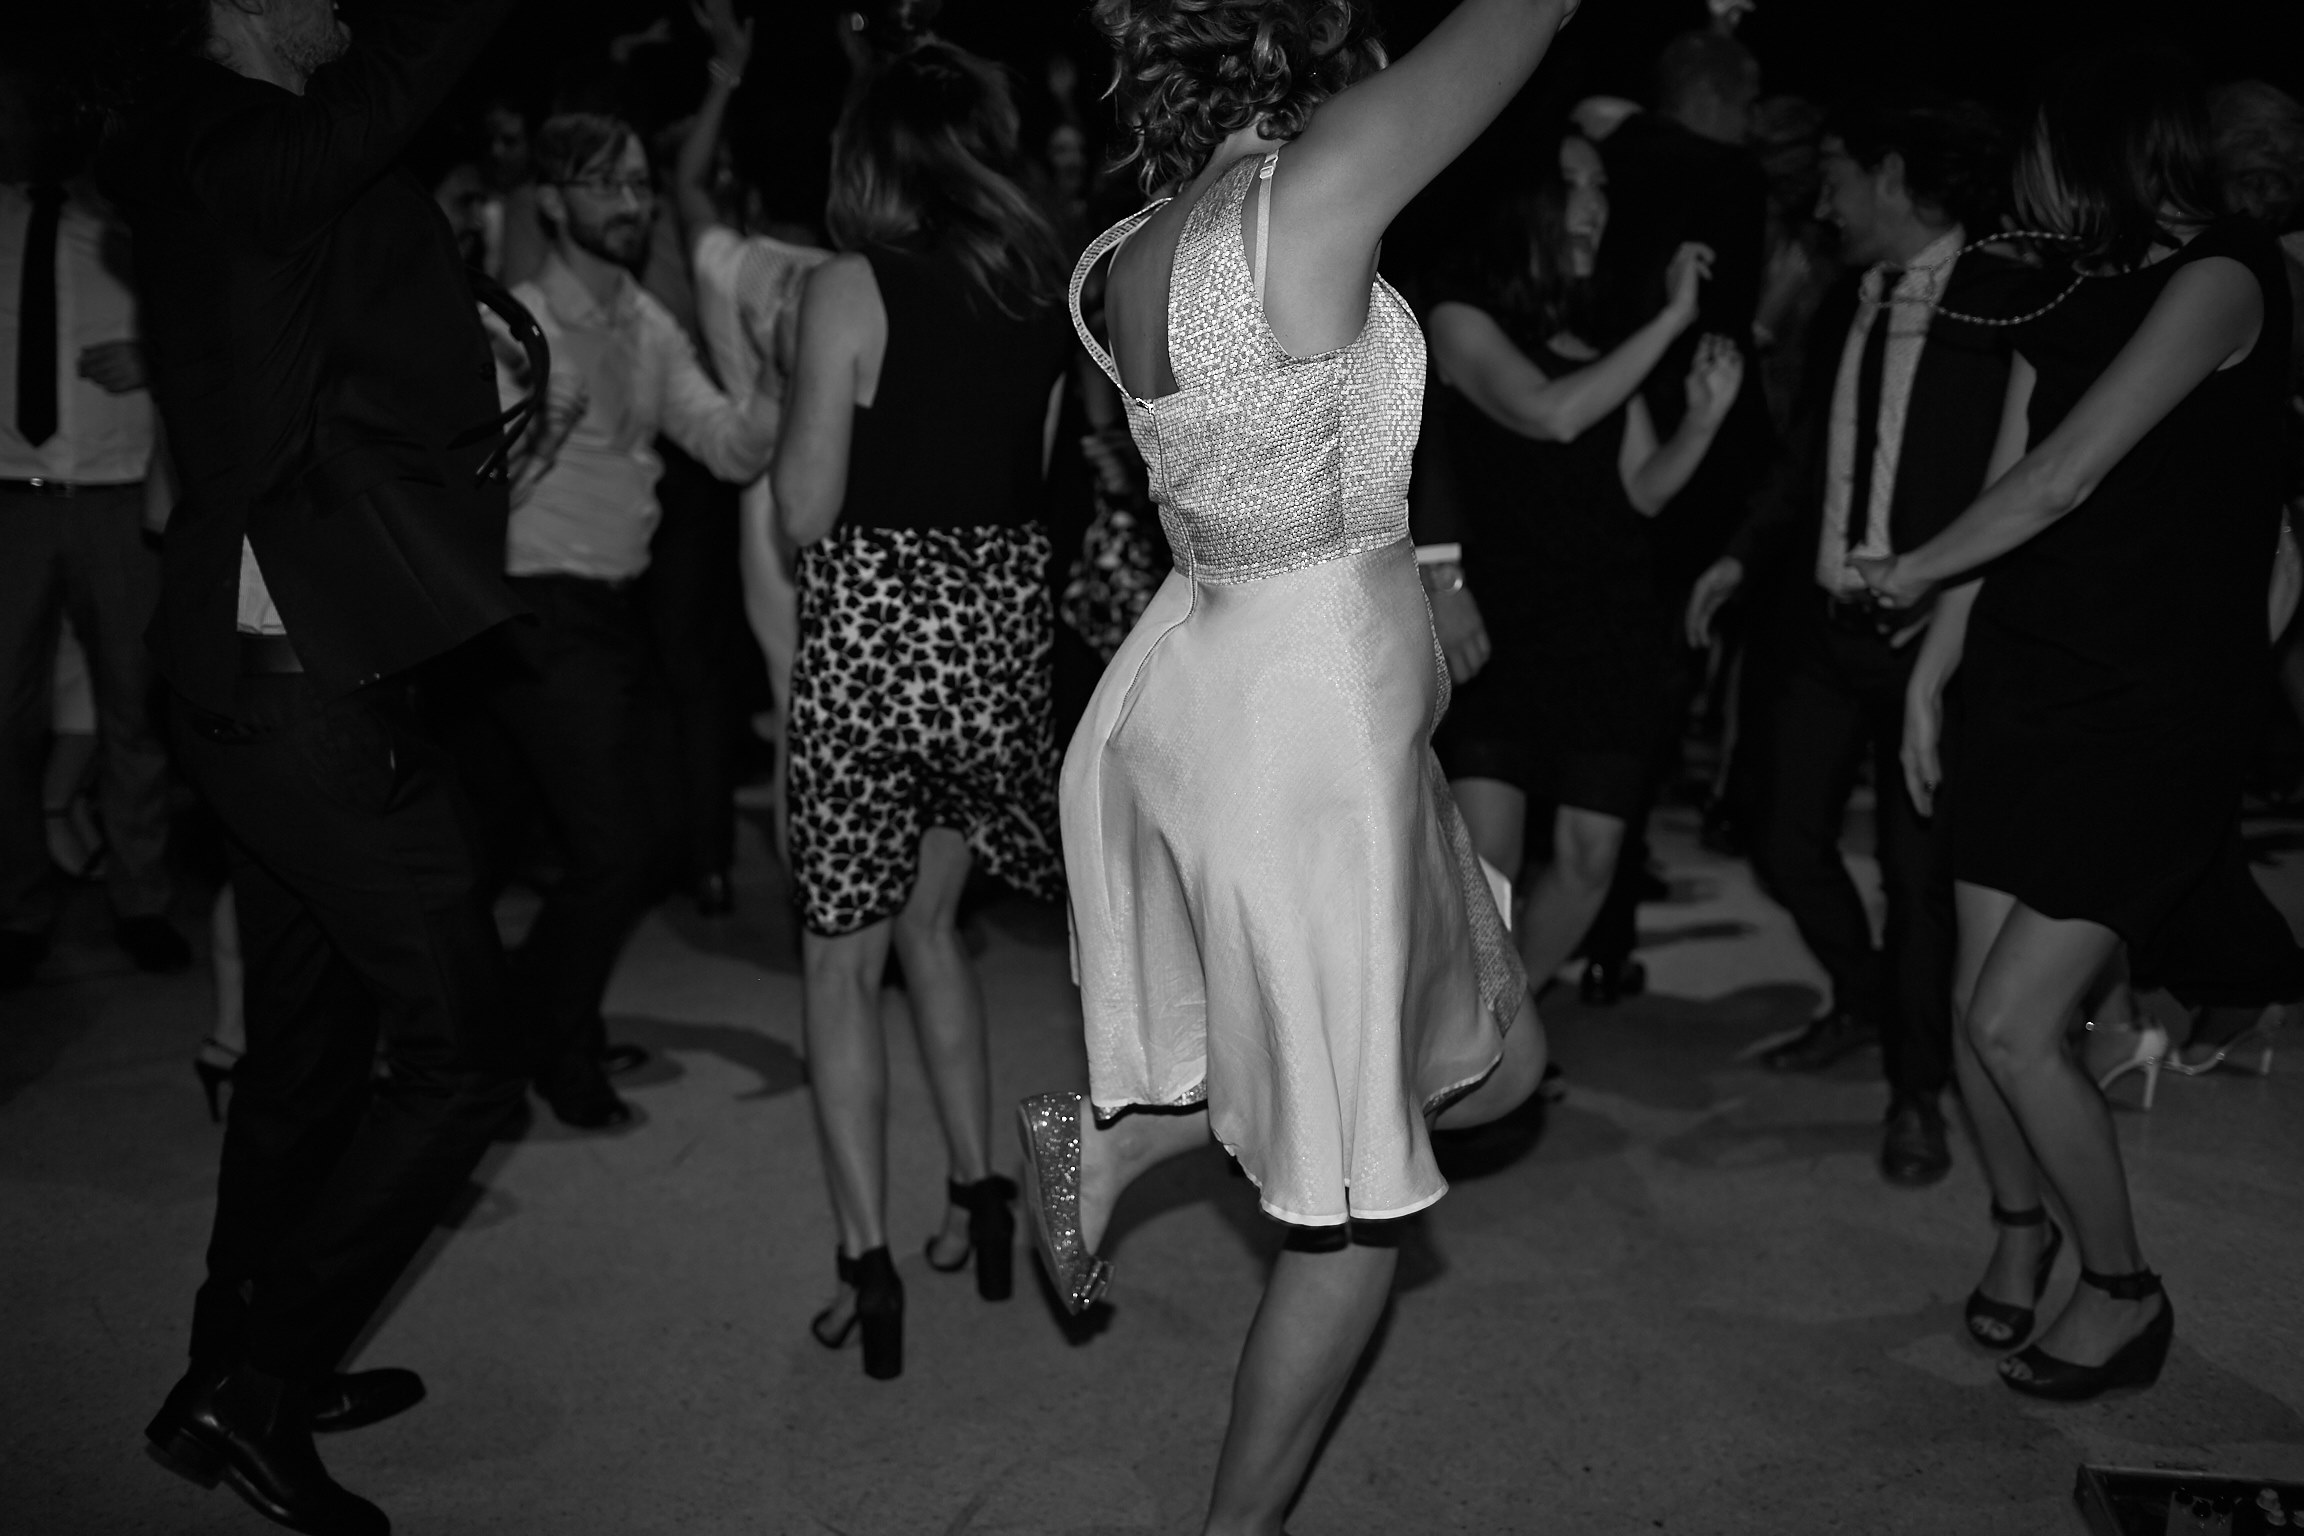 Dance your way into a Happy New Year 2016 by Lost In Love Photography